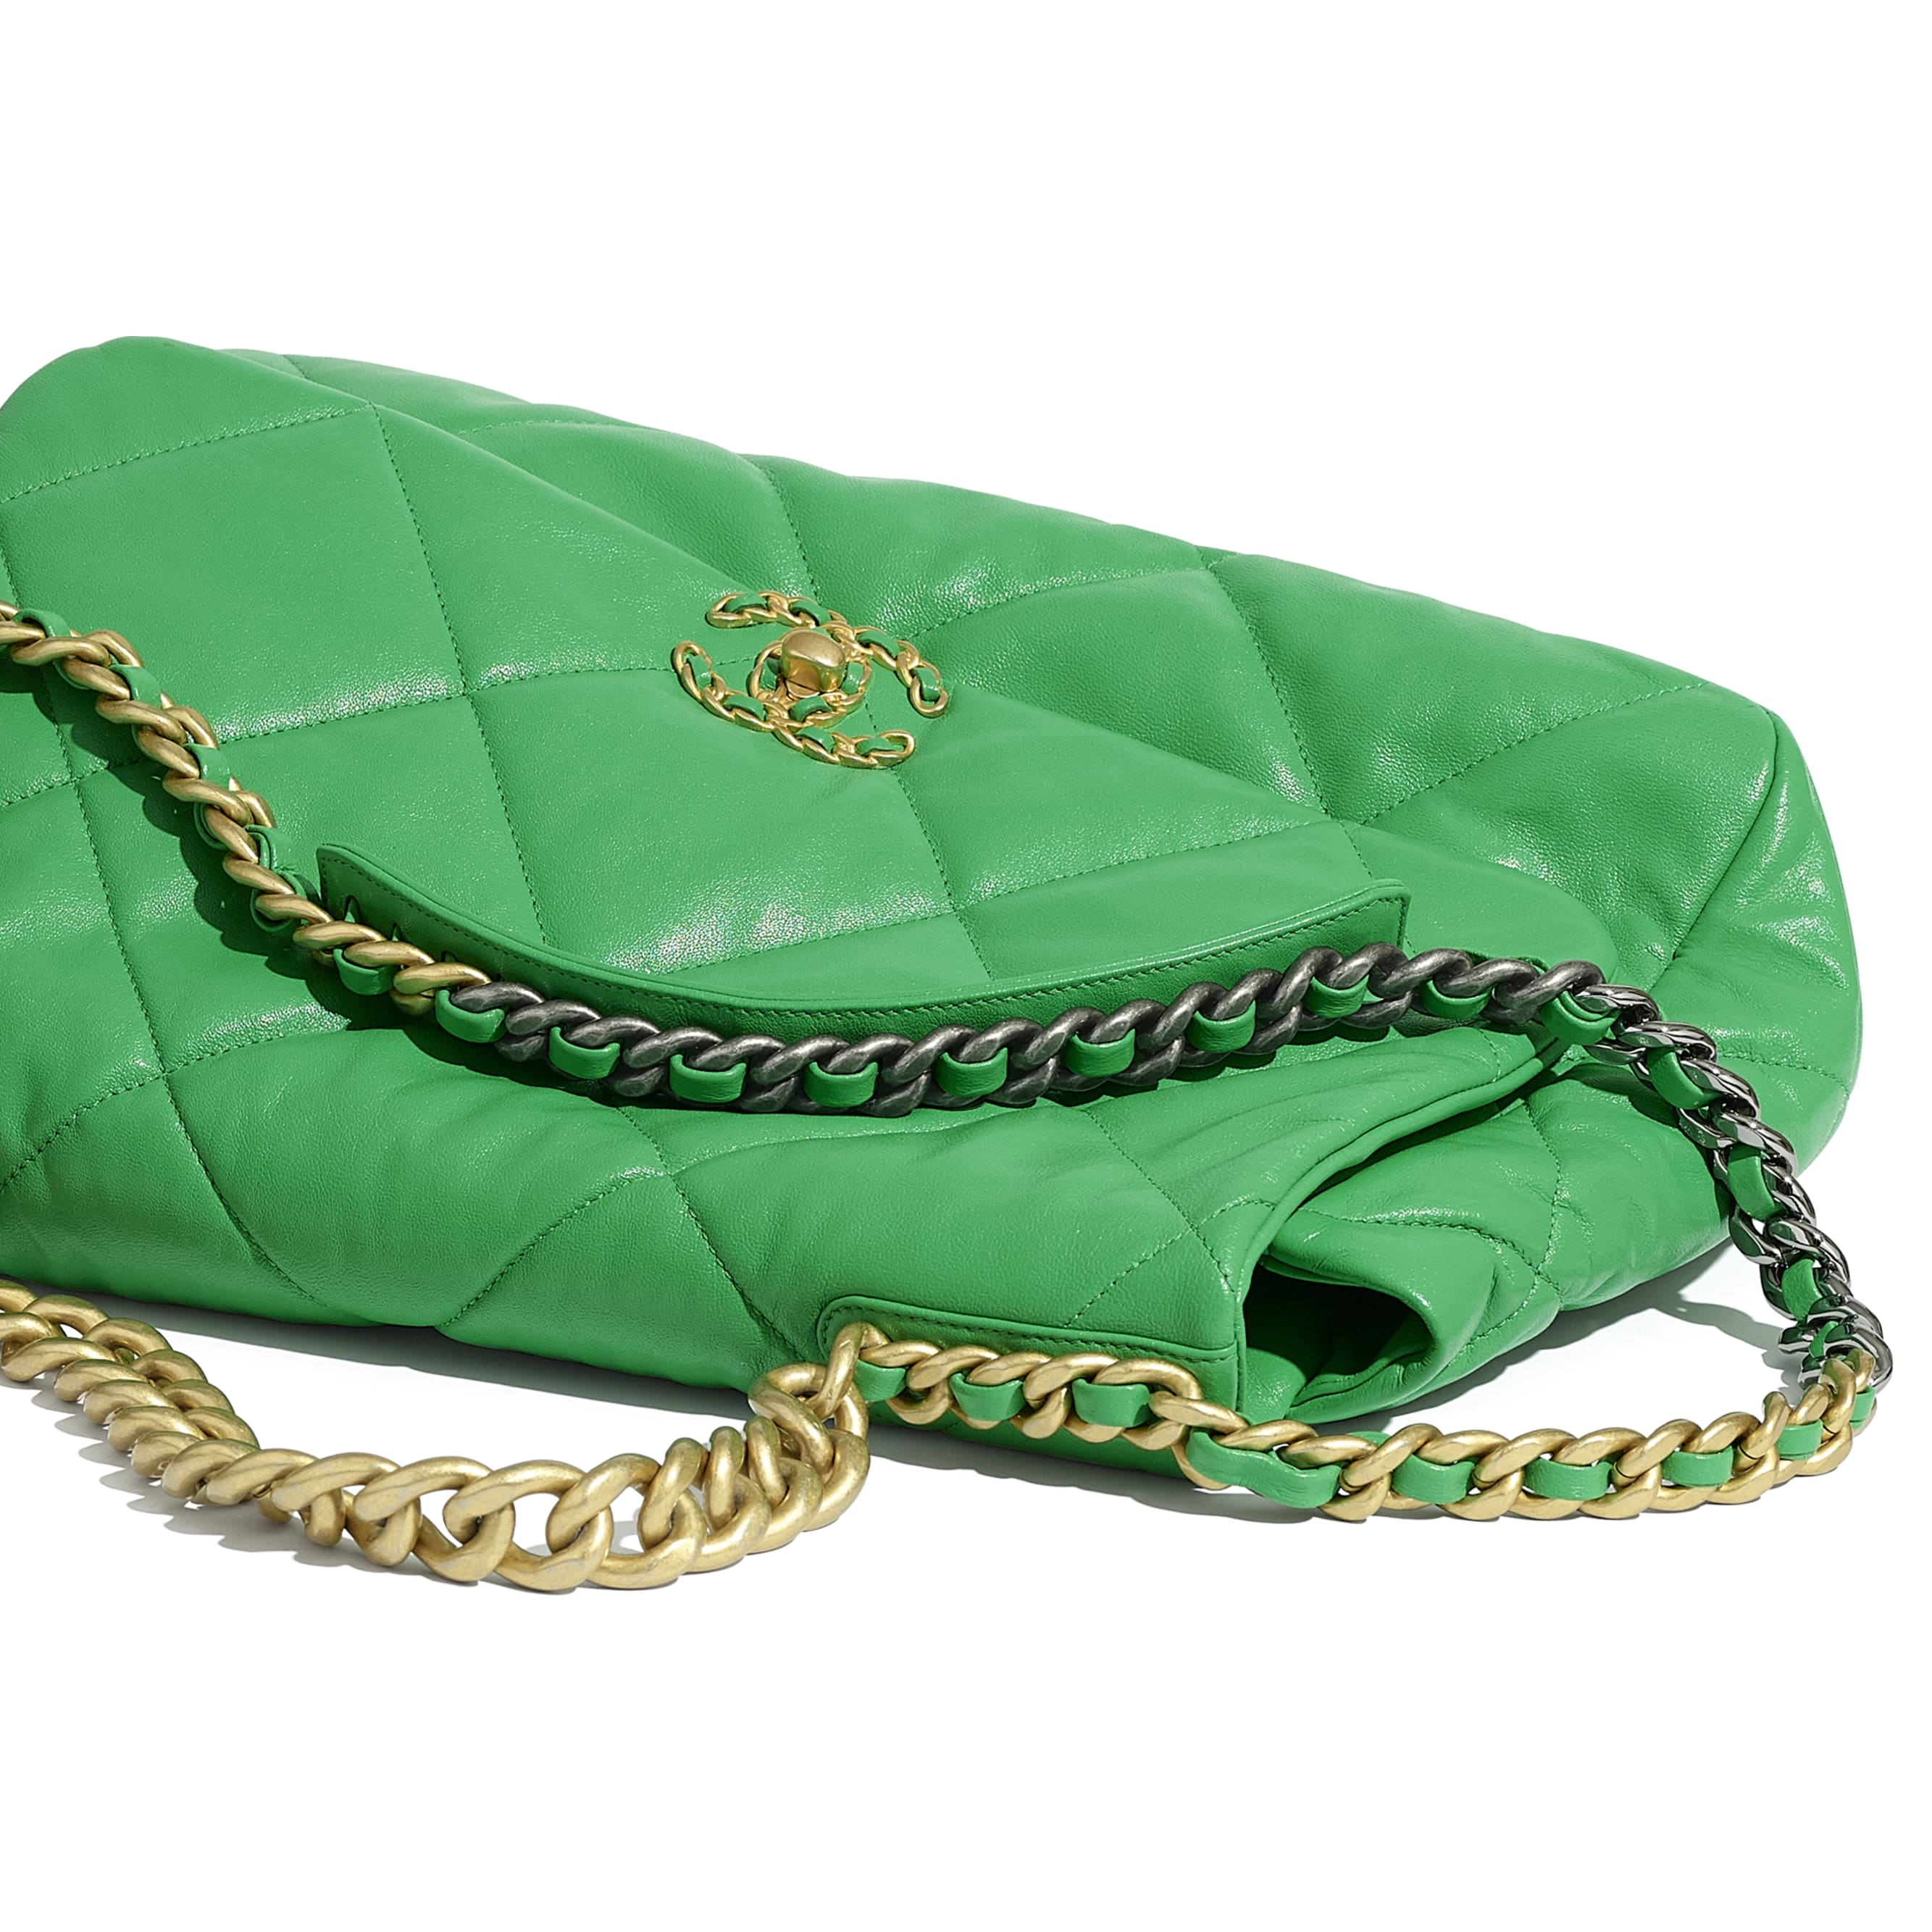 CHANEL 19 Maxi Flap Bag - Green - Lambskin, Gold-Tone, Silver-Tone & Ruthenium-Finish Metal - Extra view - see standard sized version